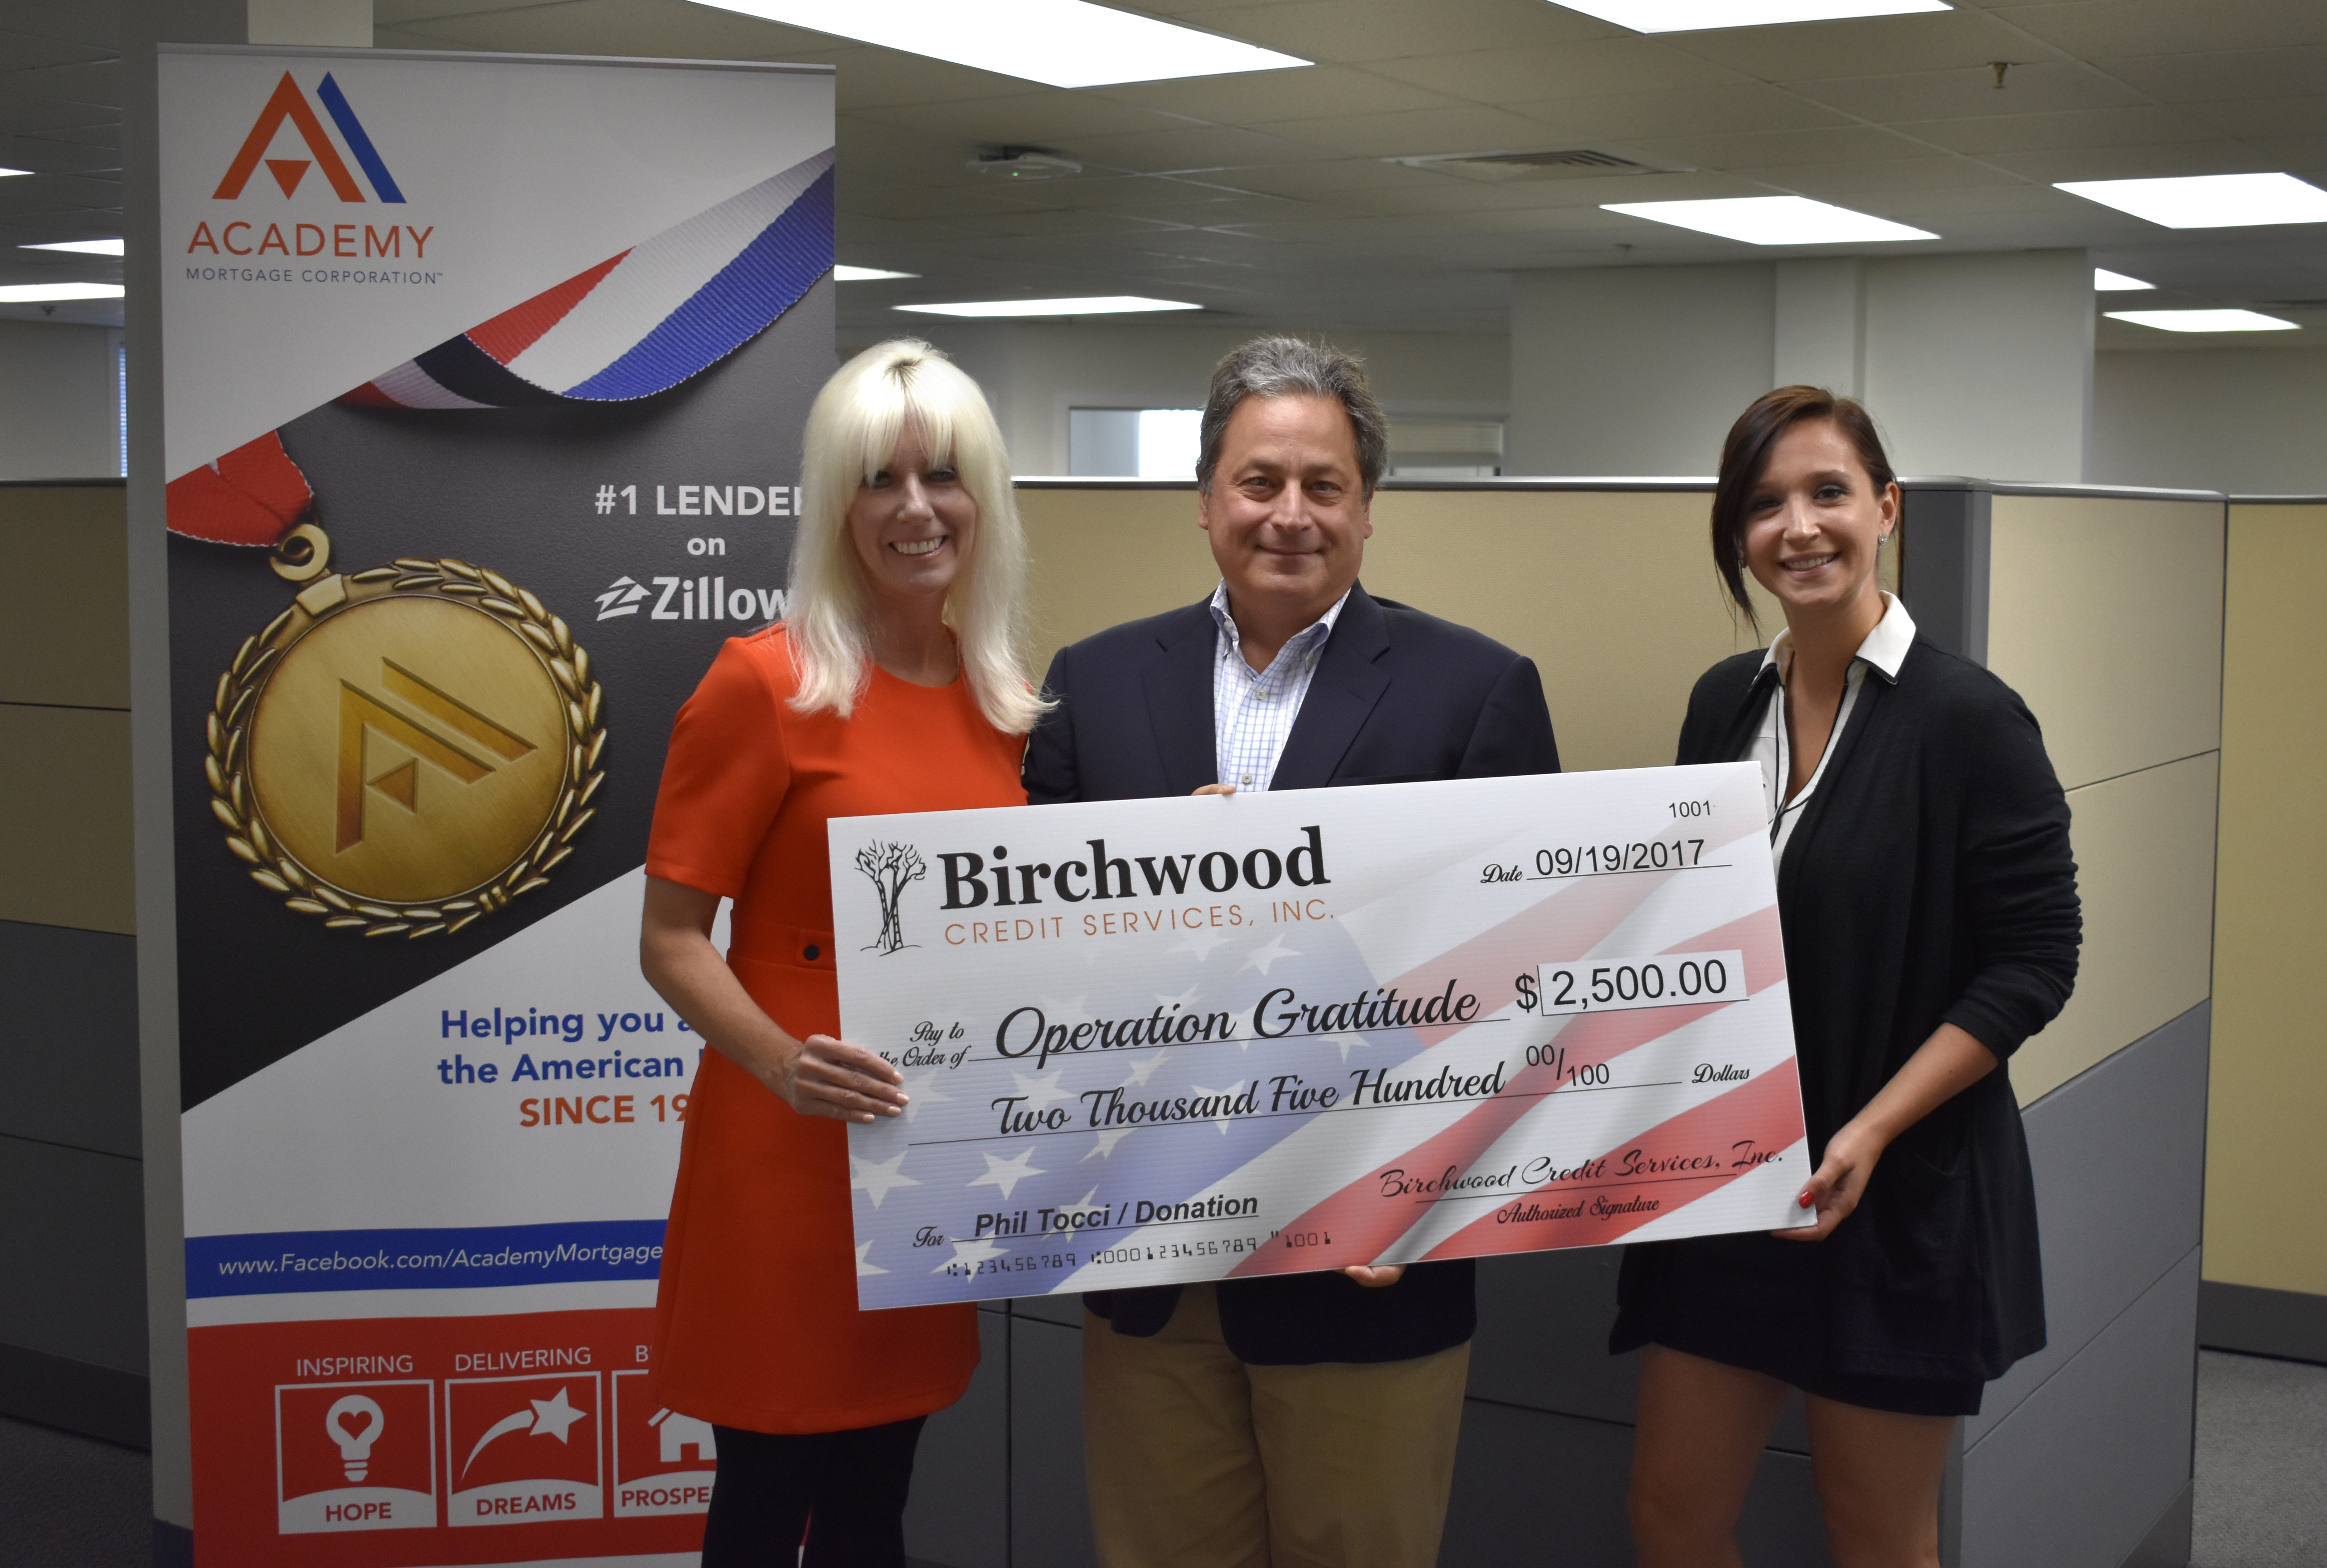 Birchwood Donation, Tocci